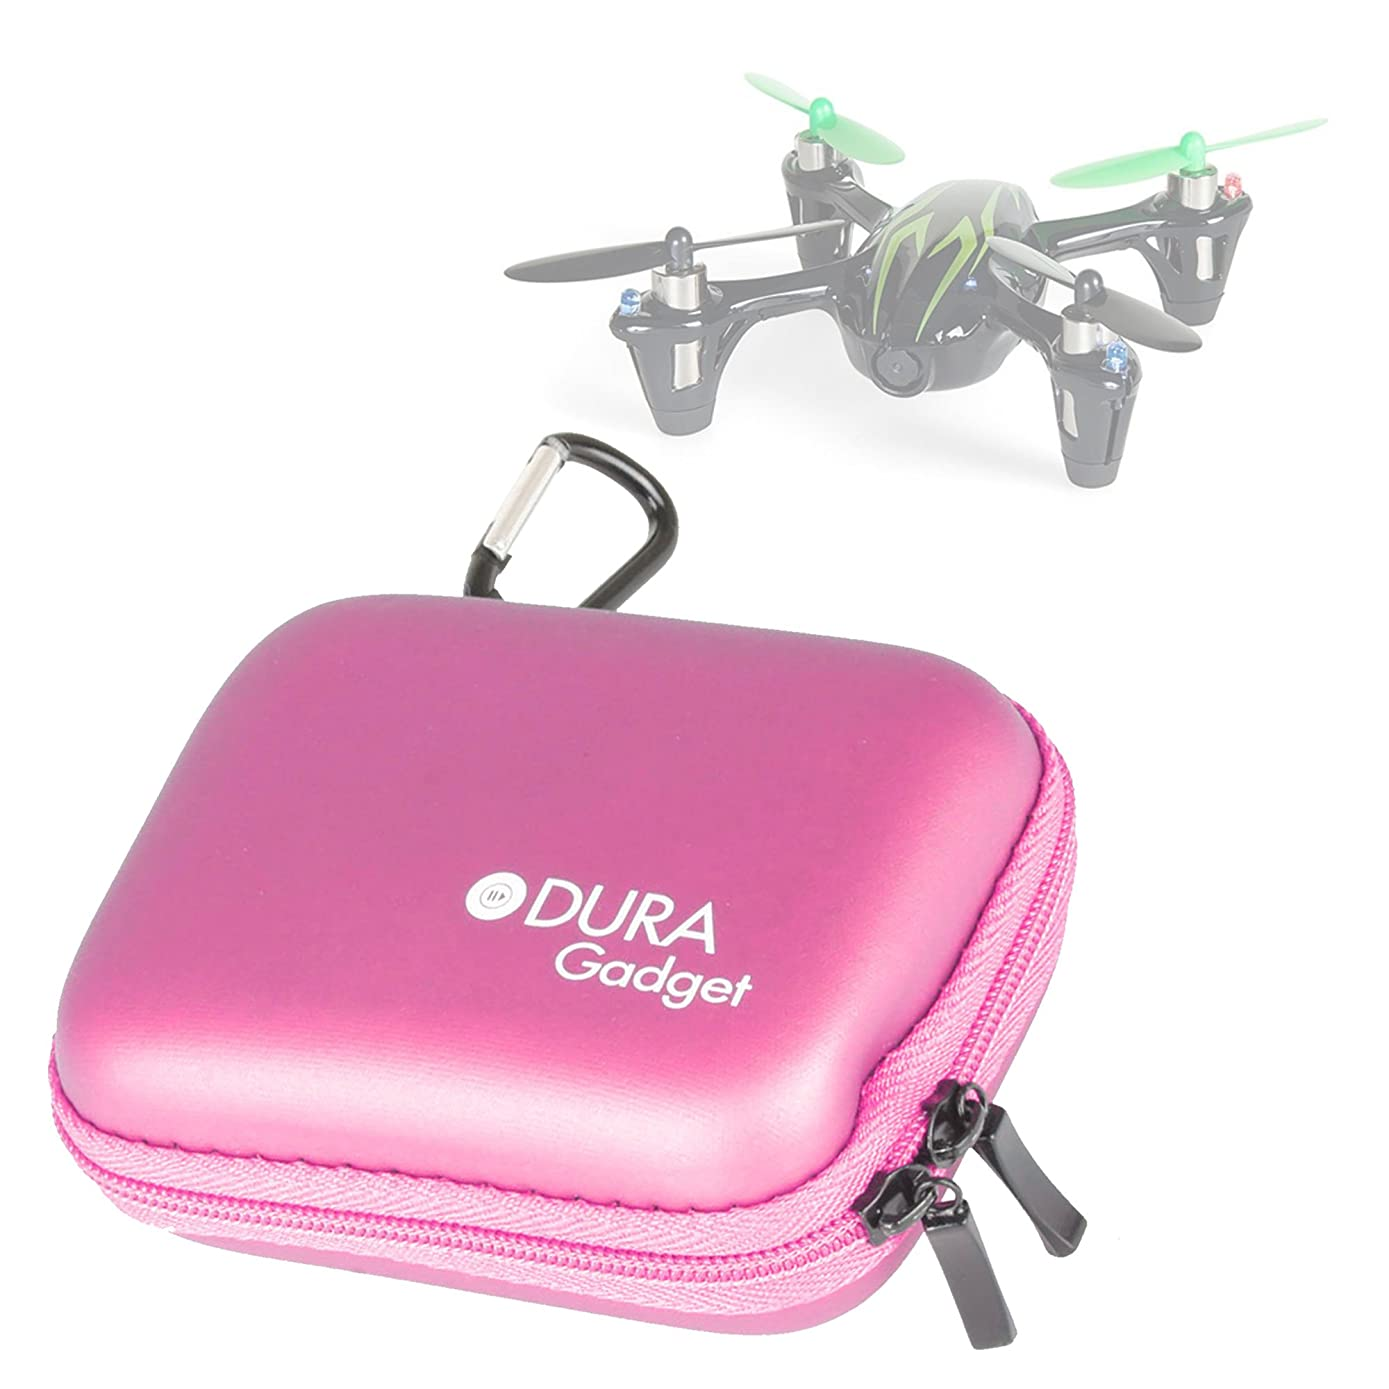 DURAGADGET Premium Quality Pink Hard EVA Shell Case/Box with Carabiner Clip & Twin Zips - Compatible with The Hubsan X4 (H107C) / X4 (H107L) Quadrocopter Drone